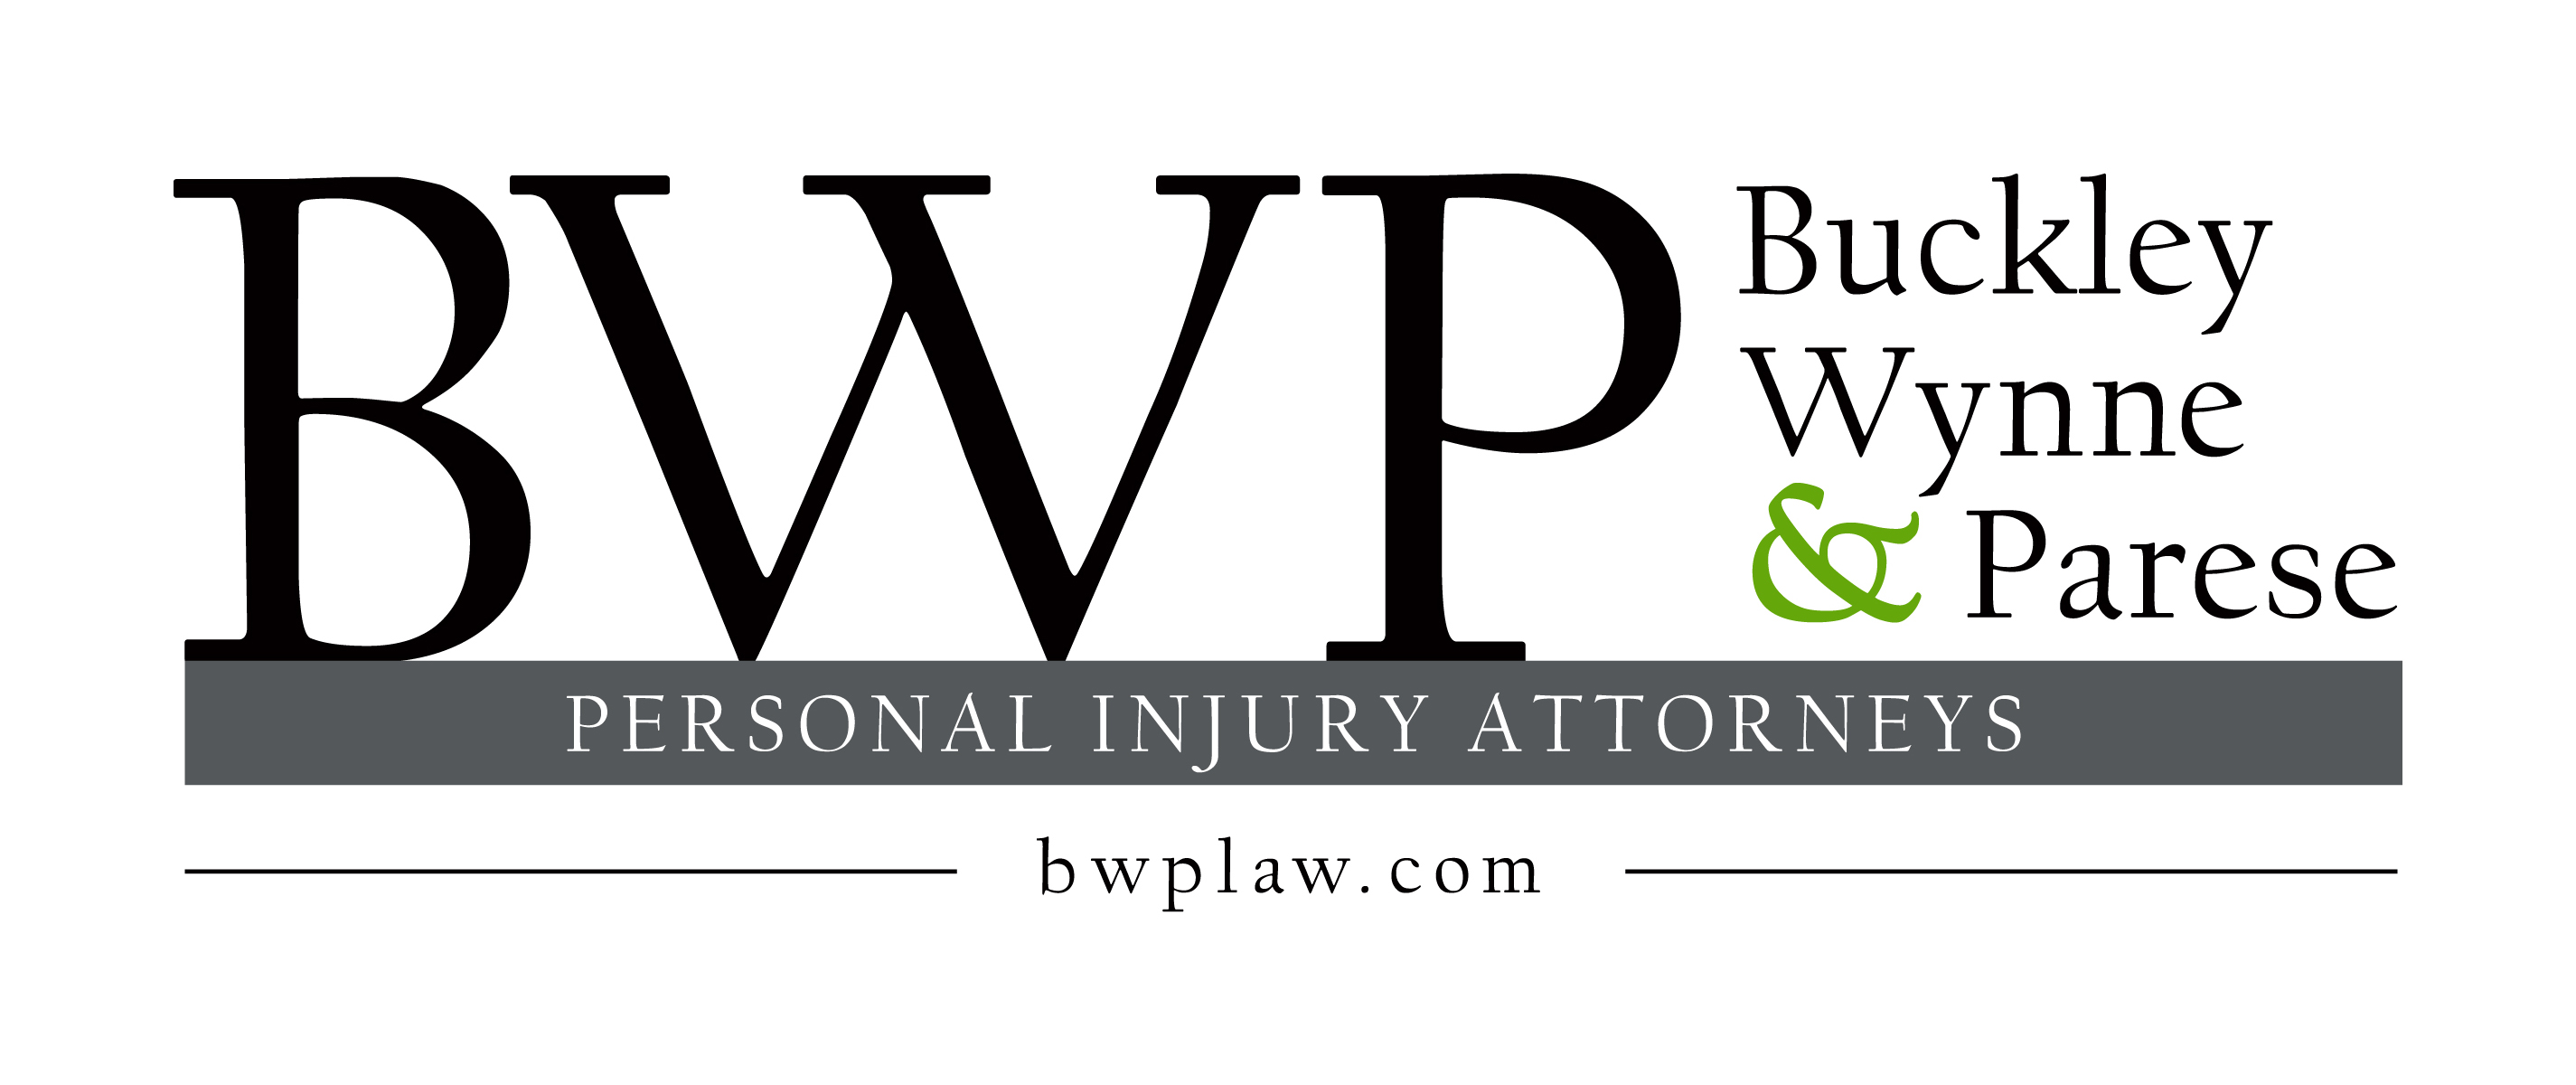 Buckley Wynne & Parese Personal Injury Attorneys Logo